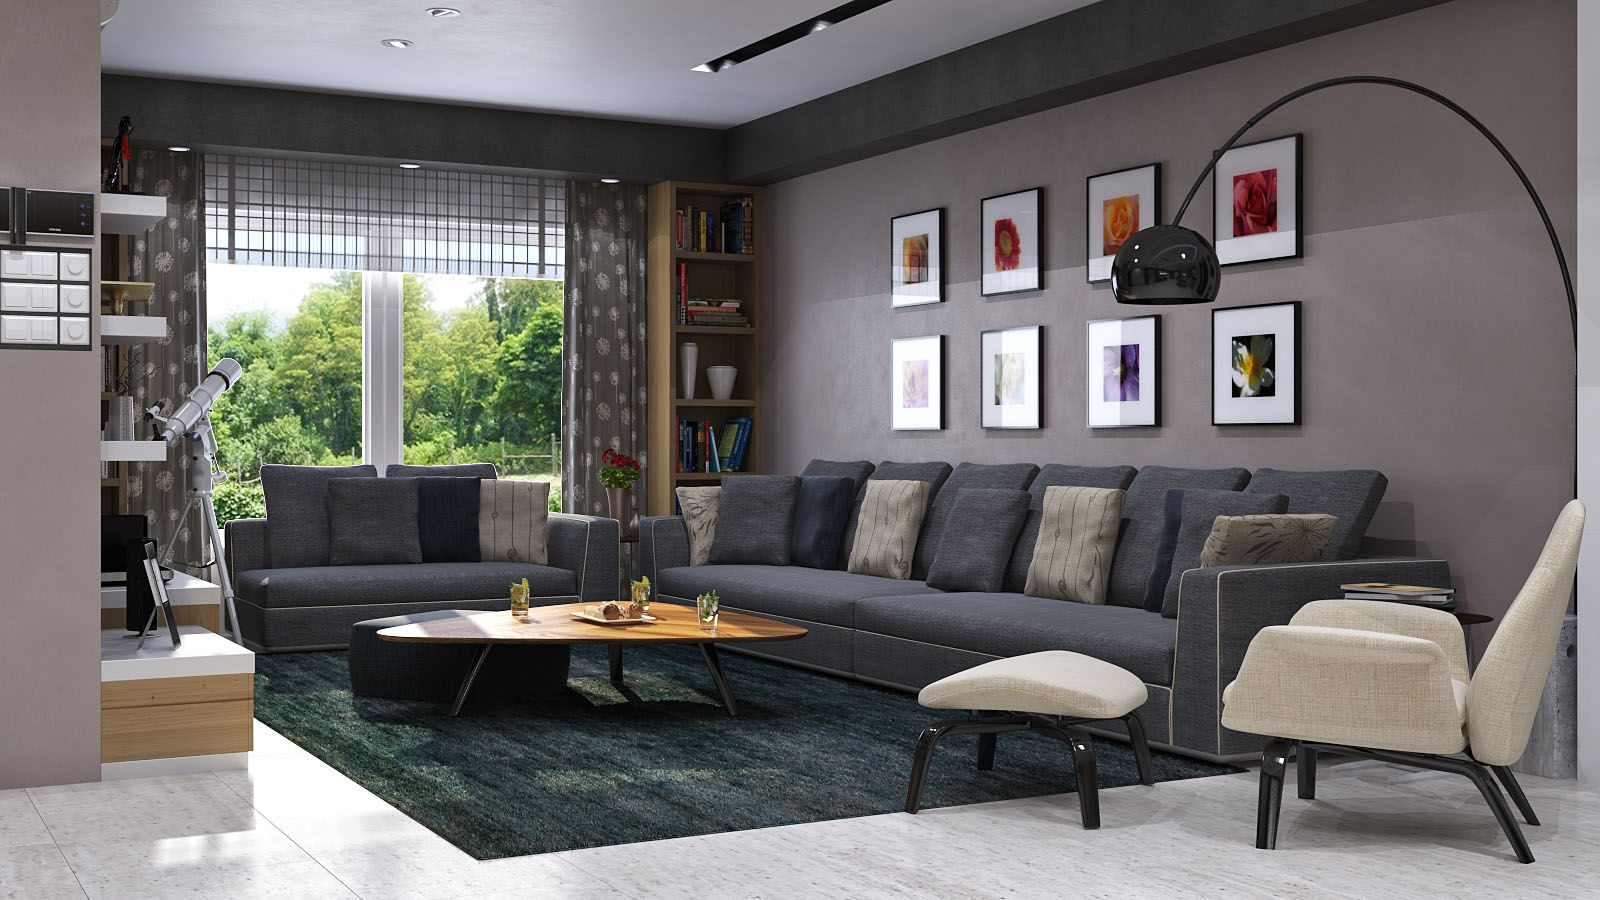 Living room: Cool gray living room ideas Gray Living Room